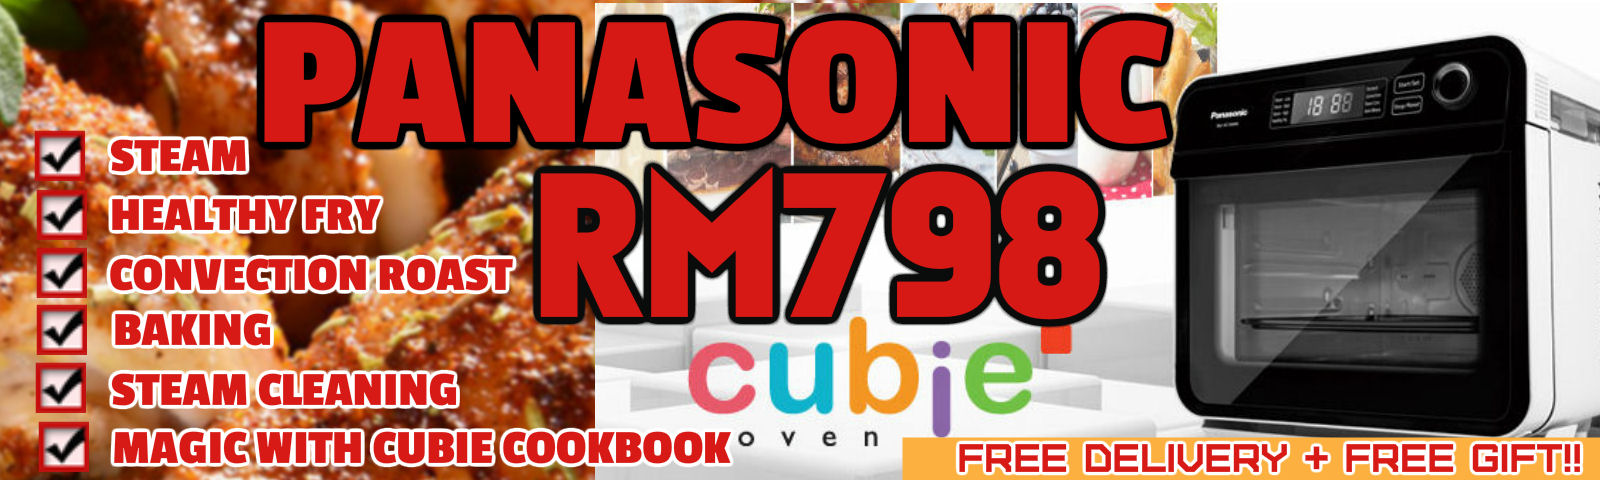 Panasonic Cubie Oven on Offer RM888